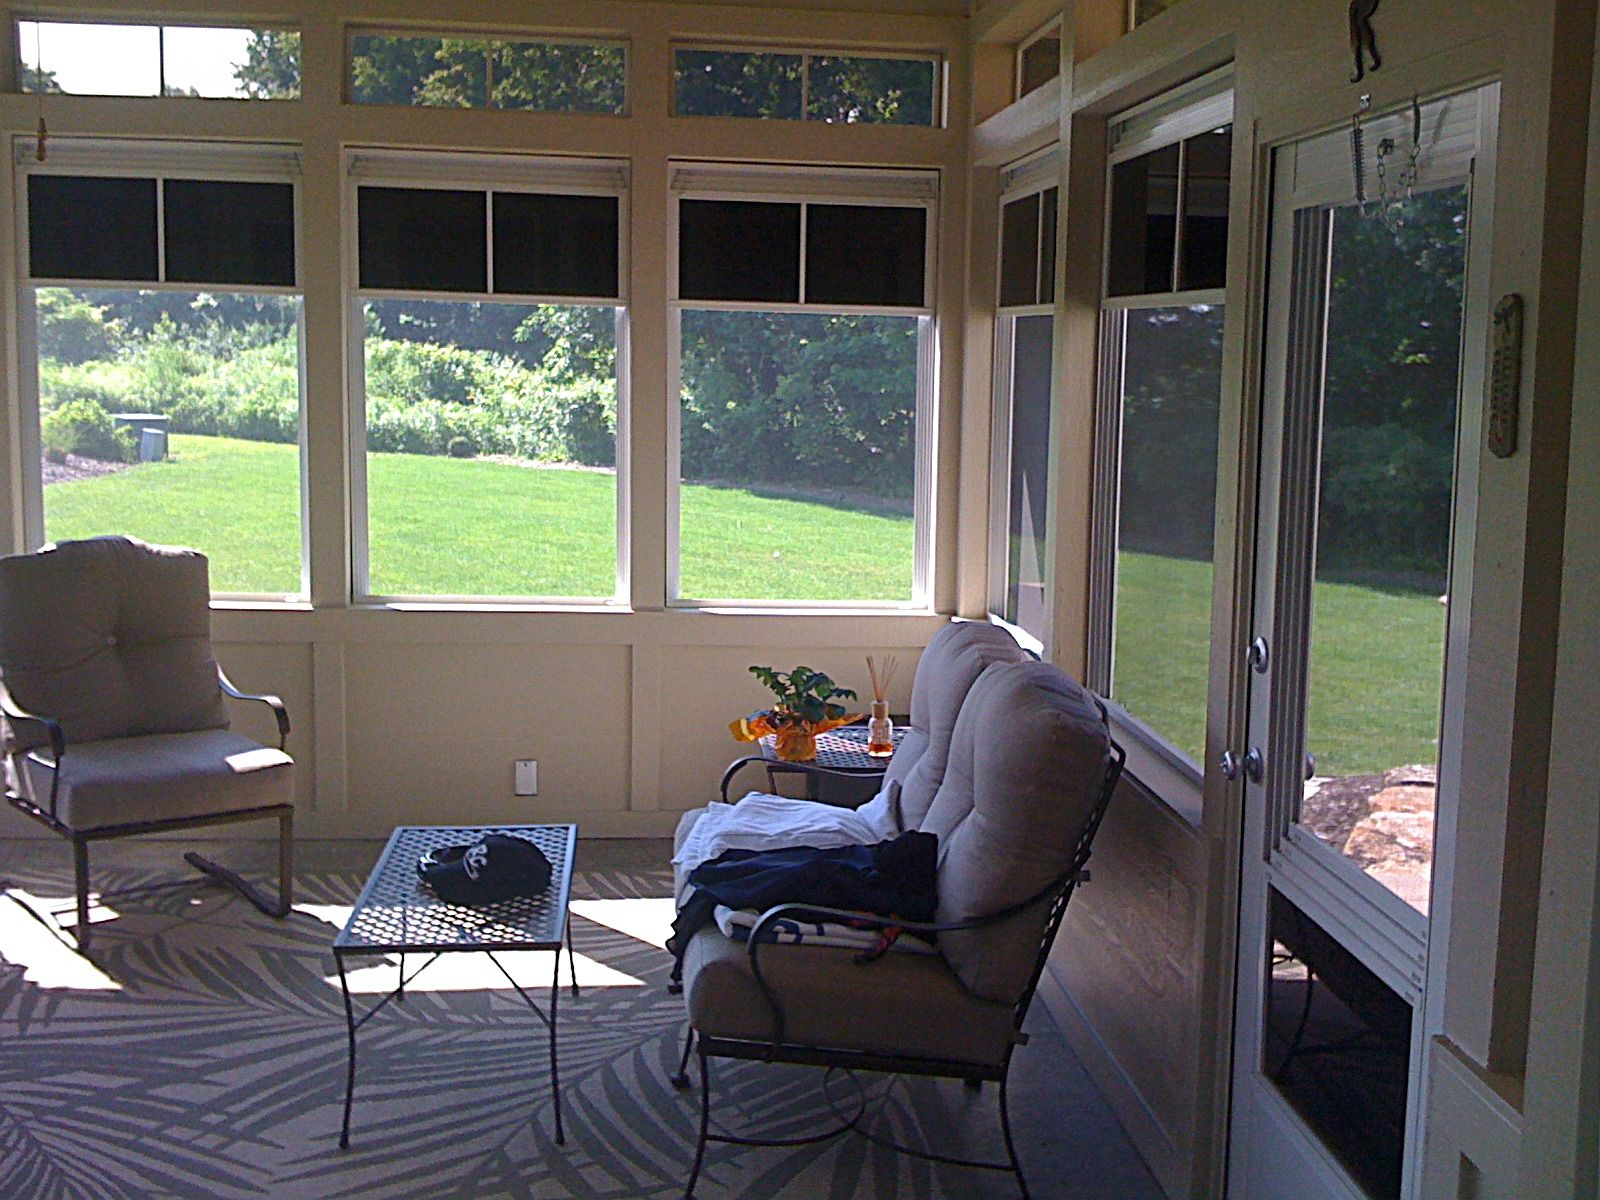 4 Season Vinyl Patio Enclosures Patio Enclosures Screened Porch Doors Porch Design